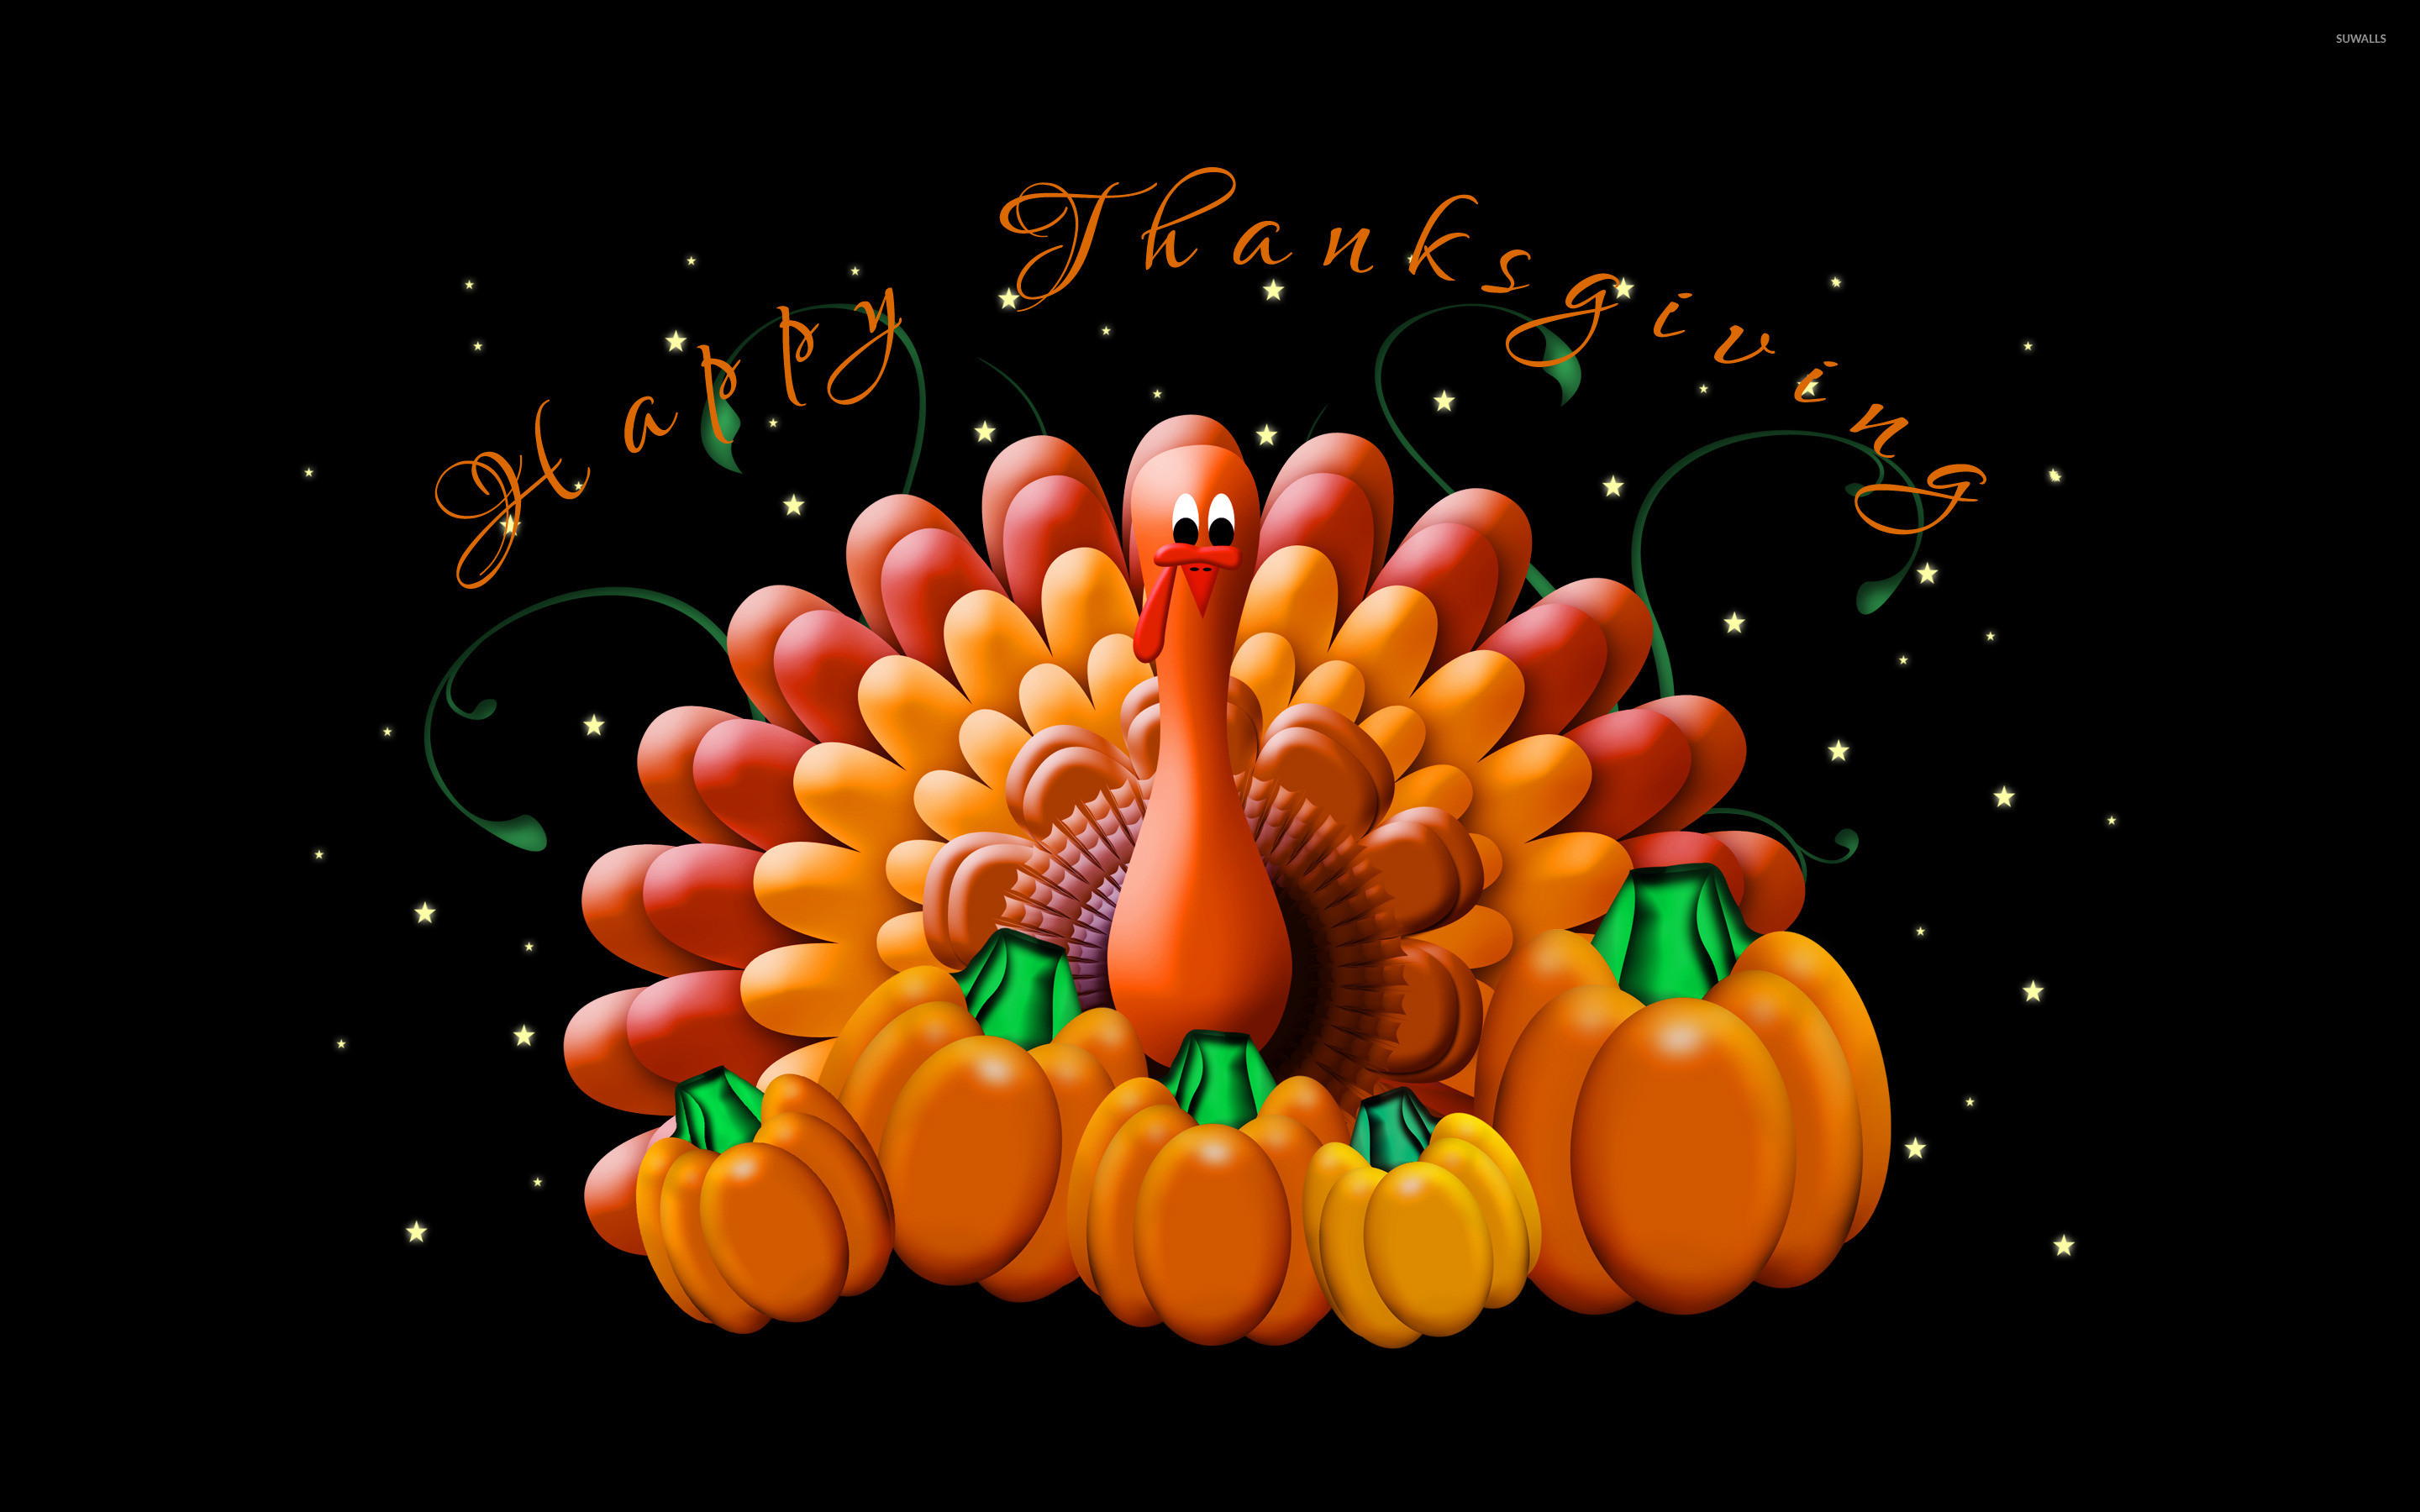 2880x1800 Happy Thanksgiving wallpaper  jpg